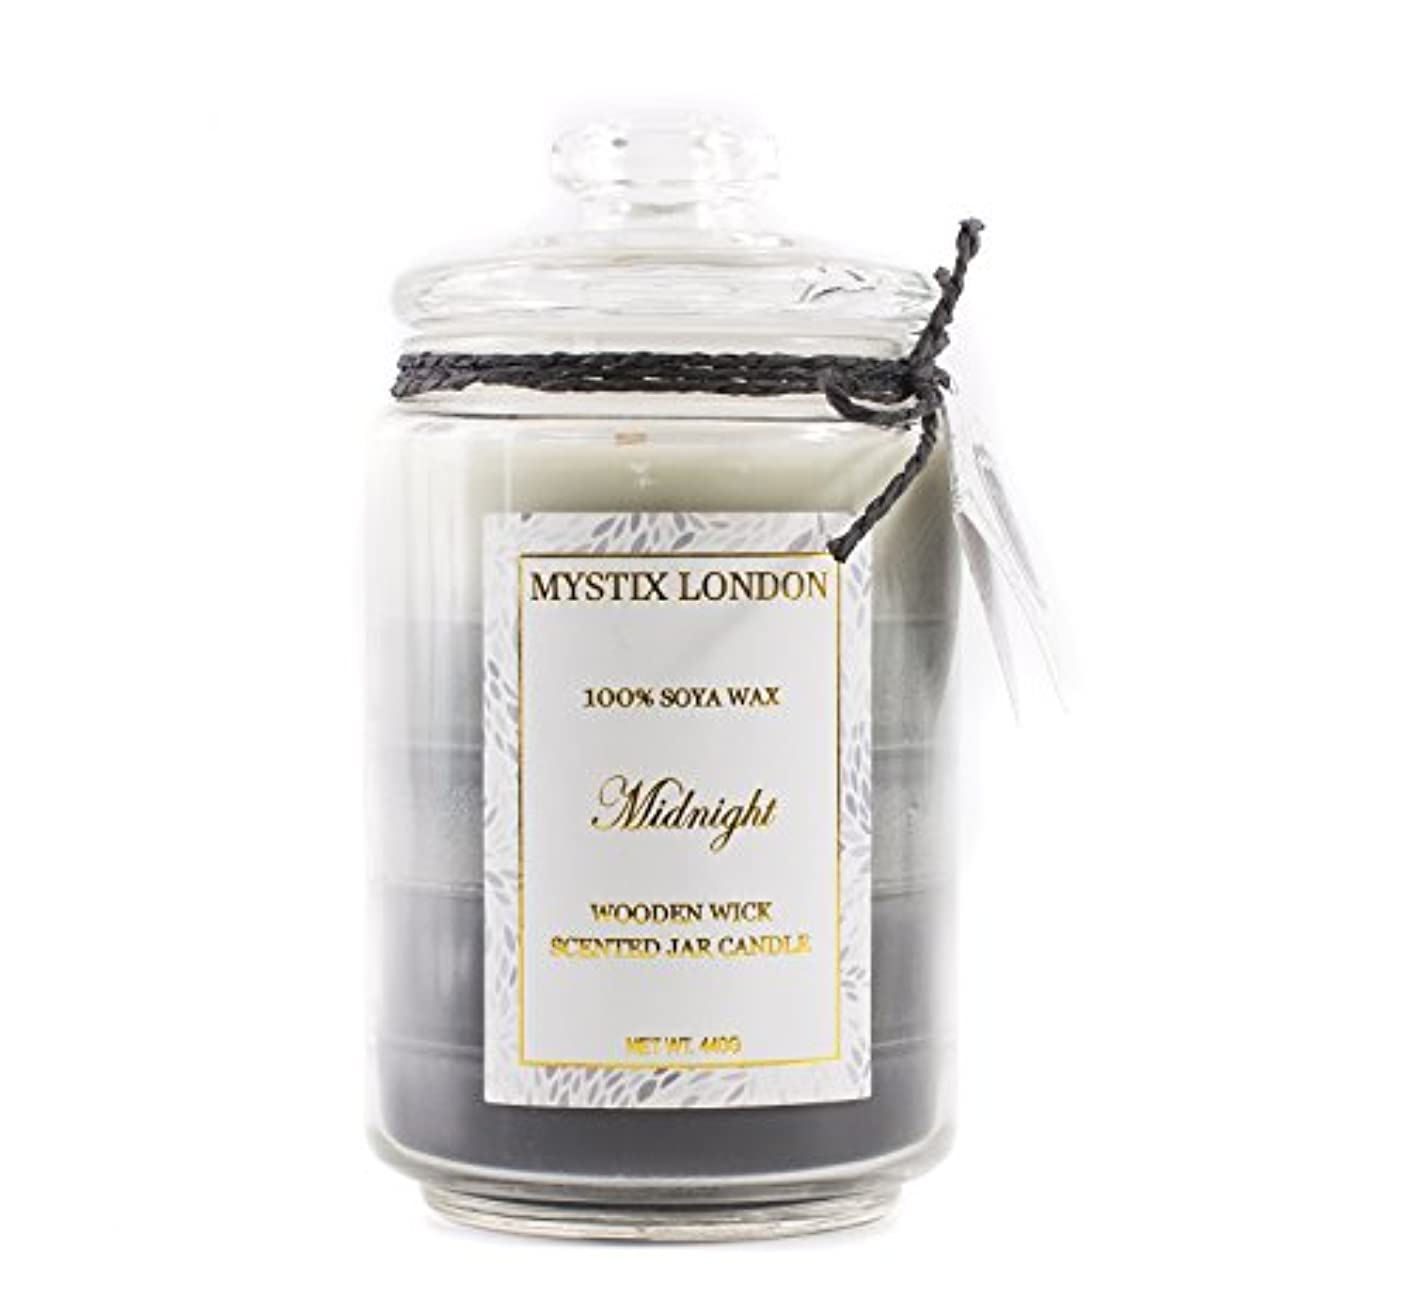 時折挽く俳句Mystix London Midnight Wooden Wick Scented Jar Candle 440g